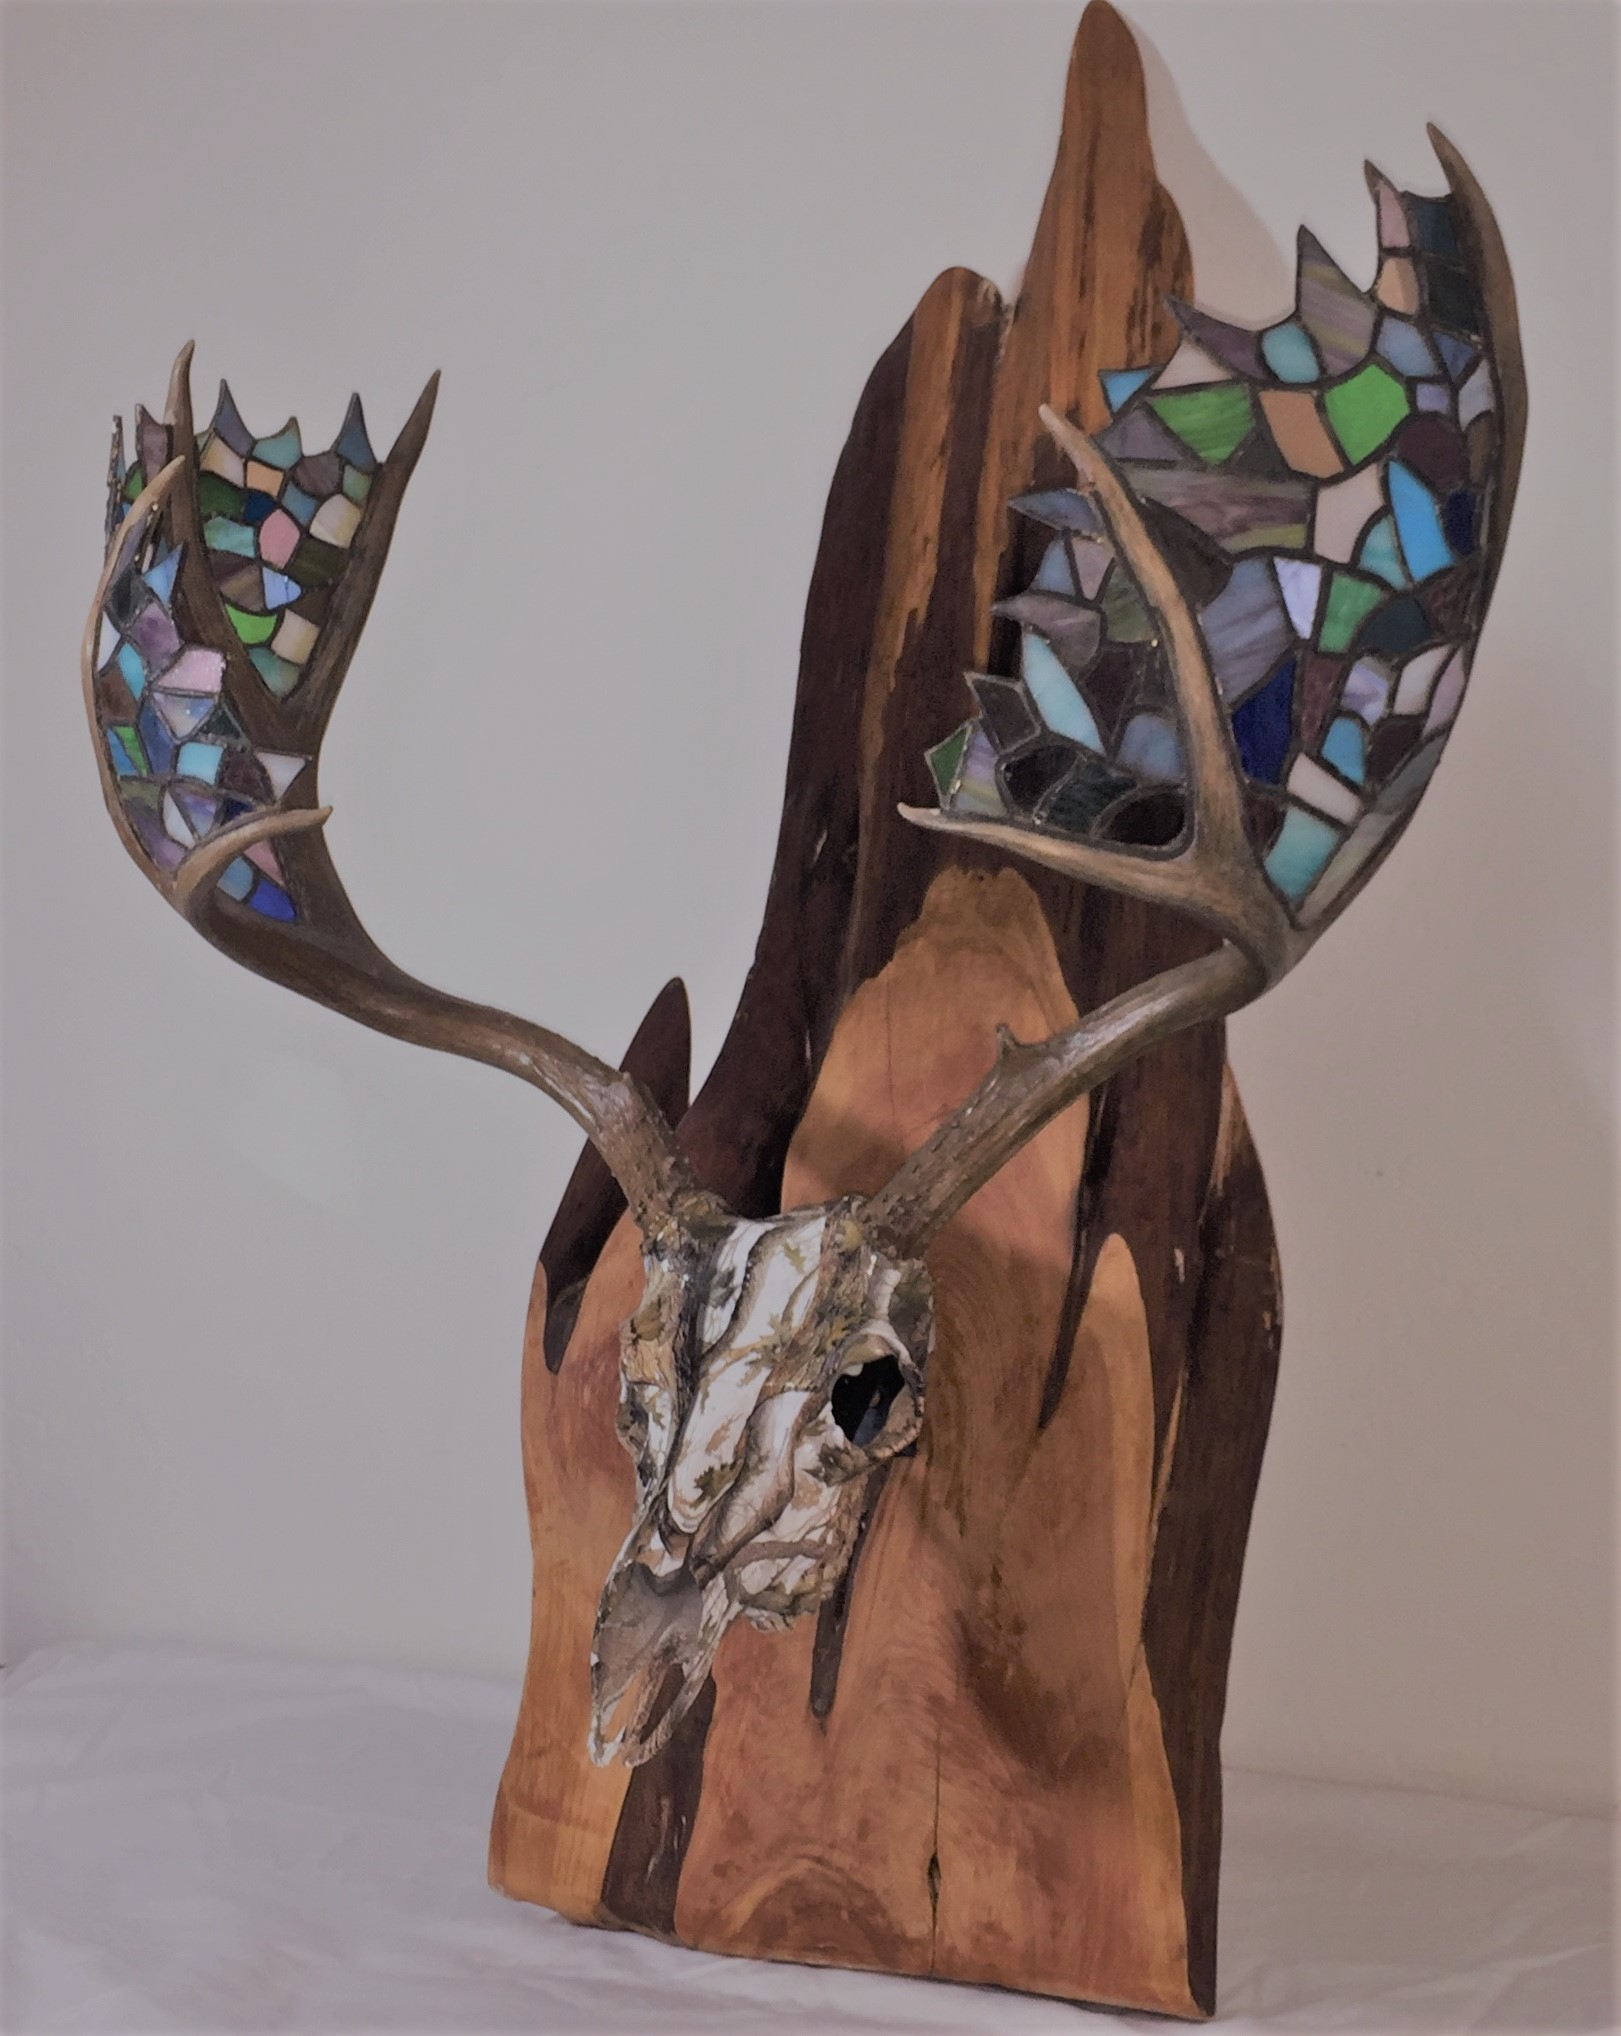 King of the Forests artwork by Alexander Buttrey - art listed for sale on Artplode